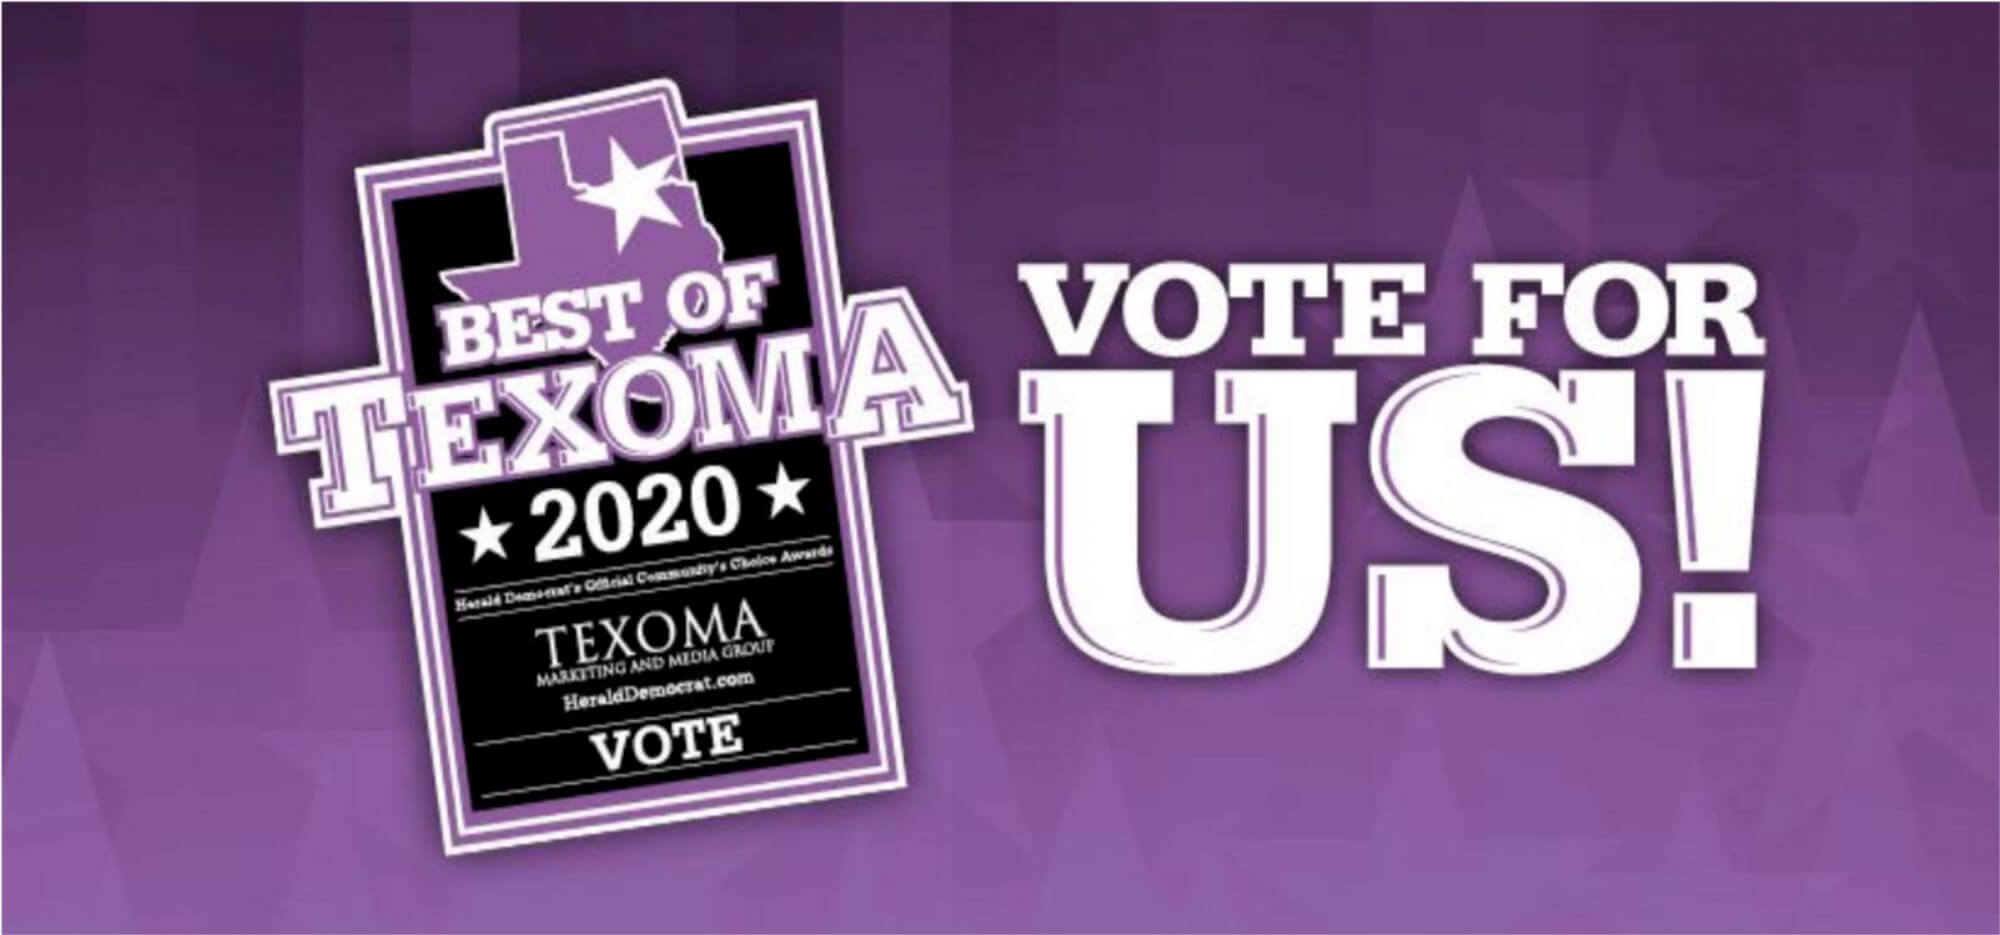 best of texoma, Best of Texoma